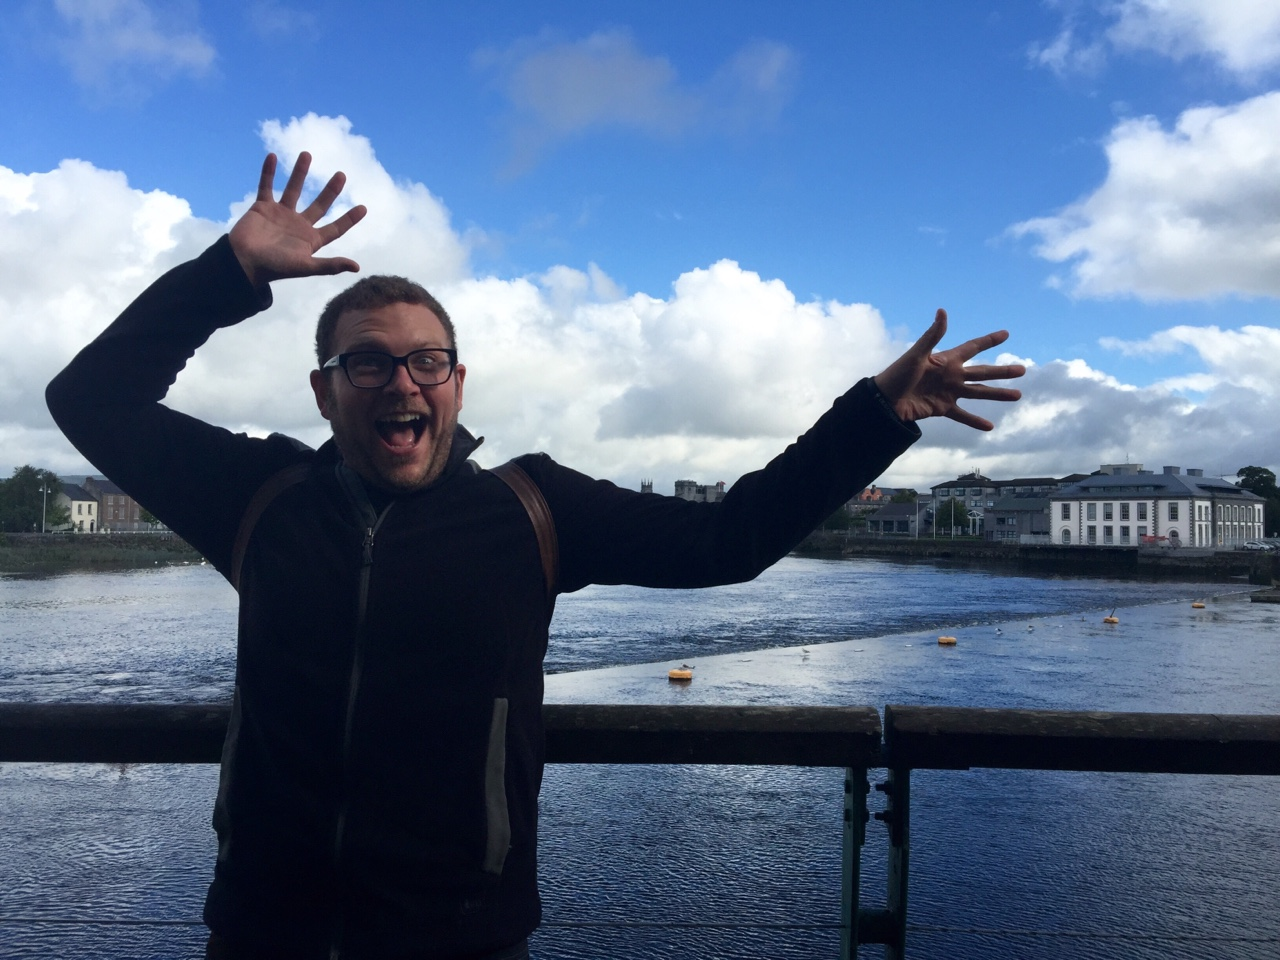 """Limerick, Ireland    Trying to """"do something weird"""" on the spot for the camera is really hard. When in doubt, wave your hands around like a crazy person, and consider it a job well done 😝"""